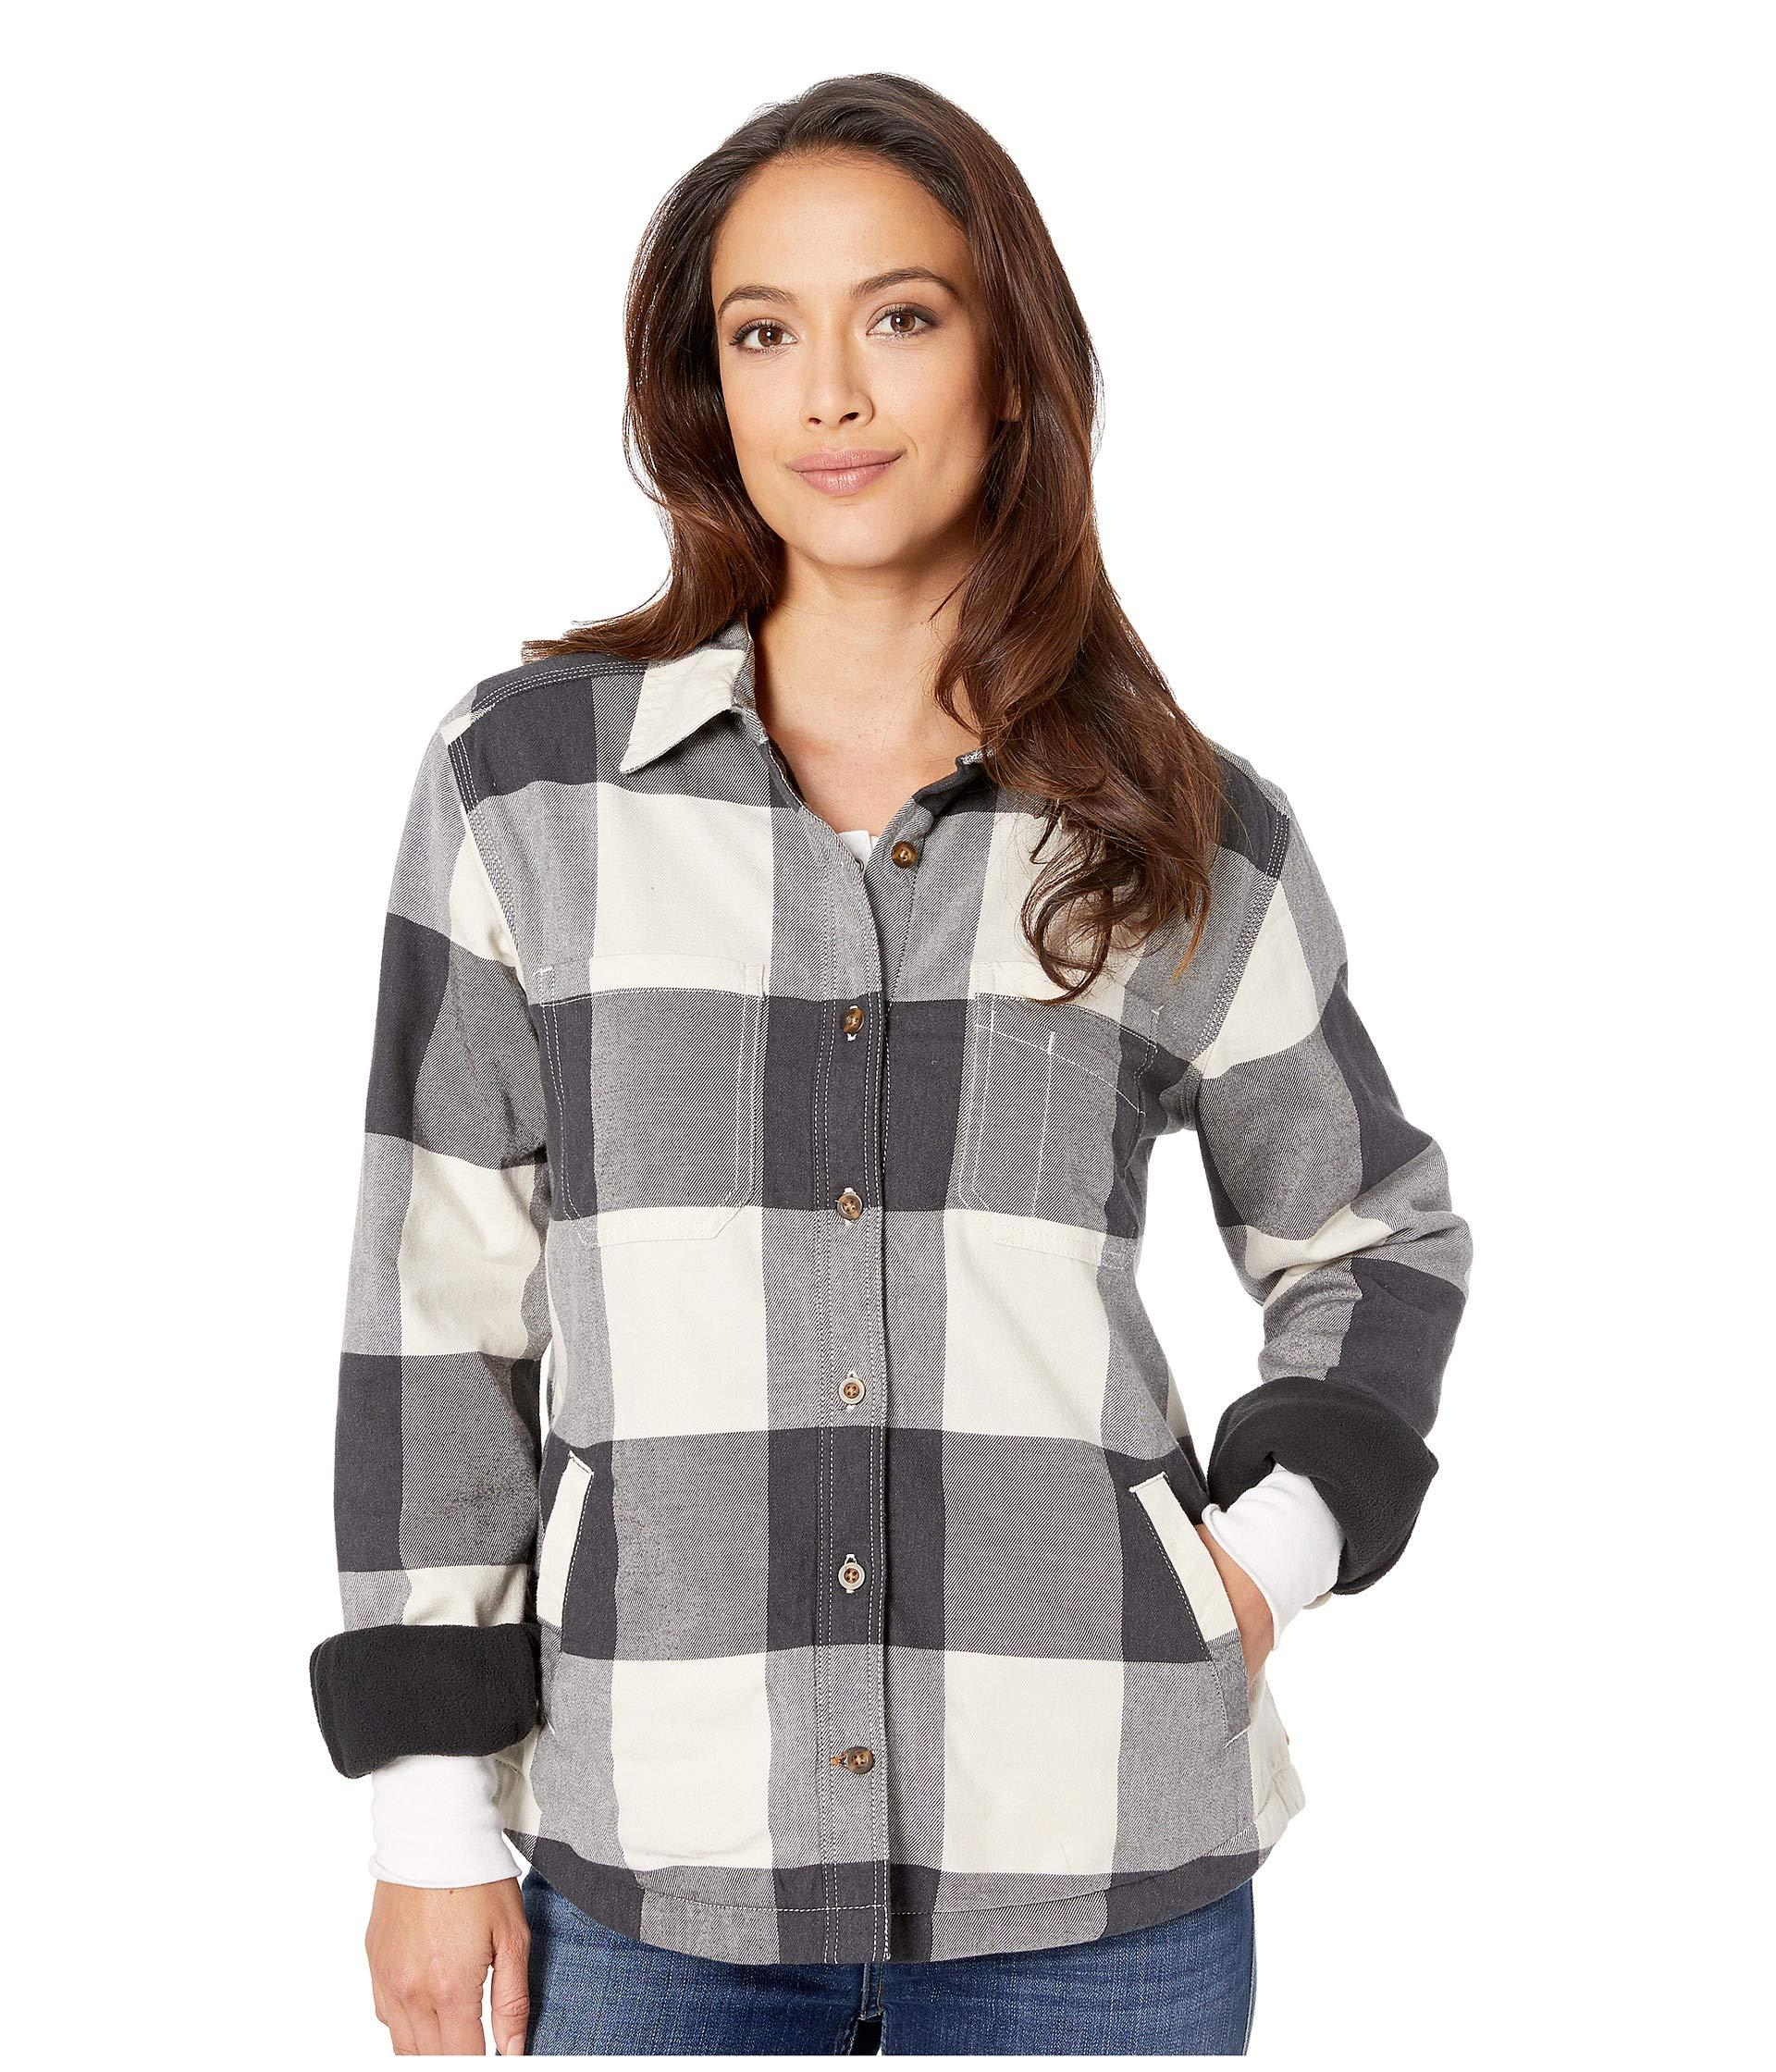 new styles 7ba1a f5454 Carhartt. Women s Natural Rugged Flex® Hamilton Fleece Lined Shirt.  60  33  From 6PM. Free shipping with ...